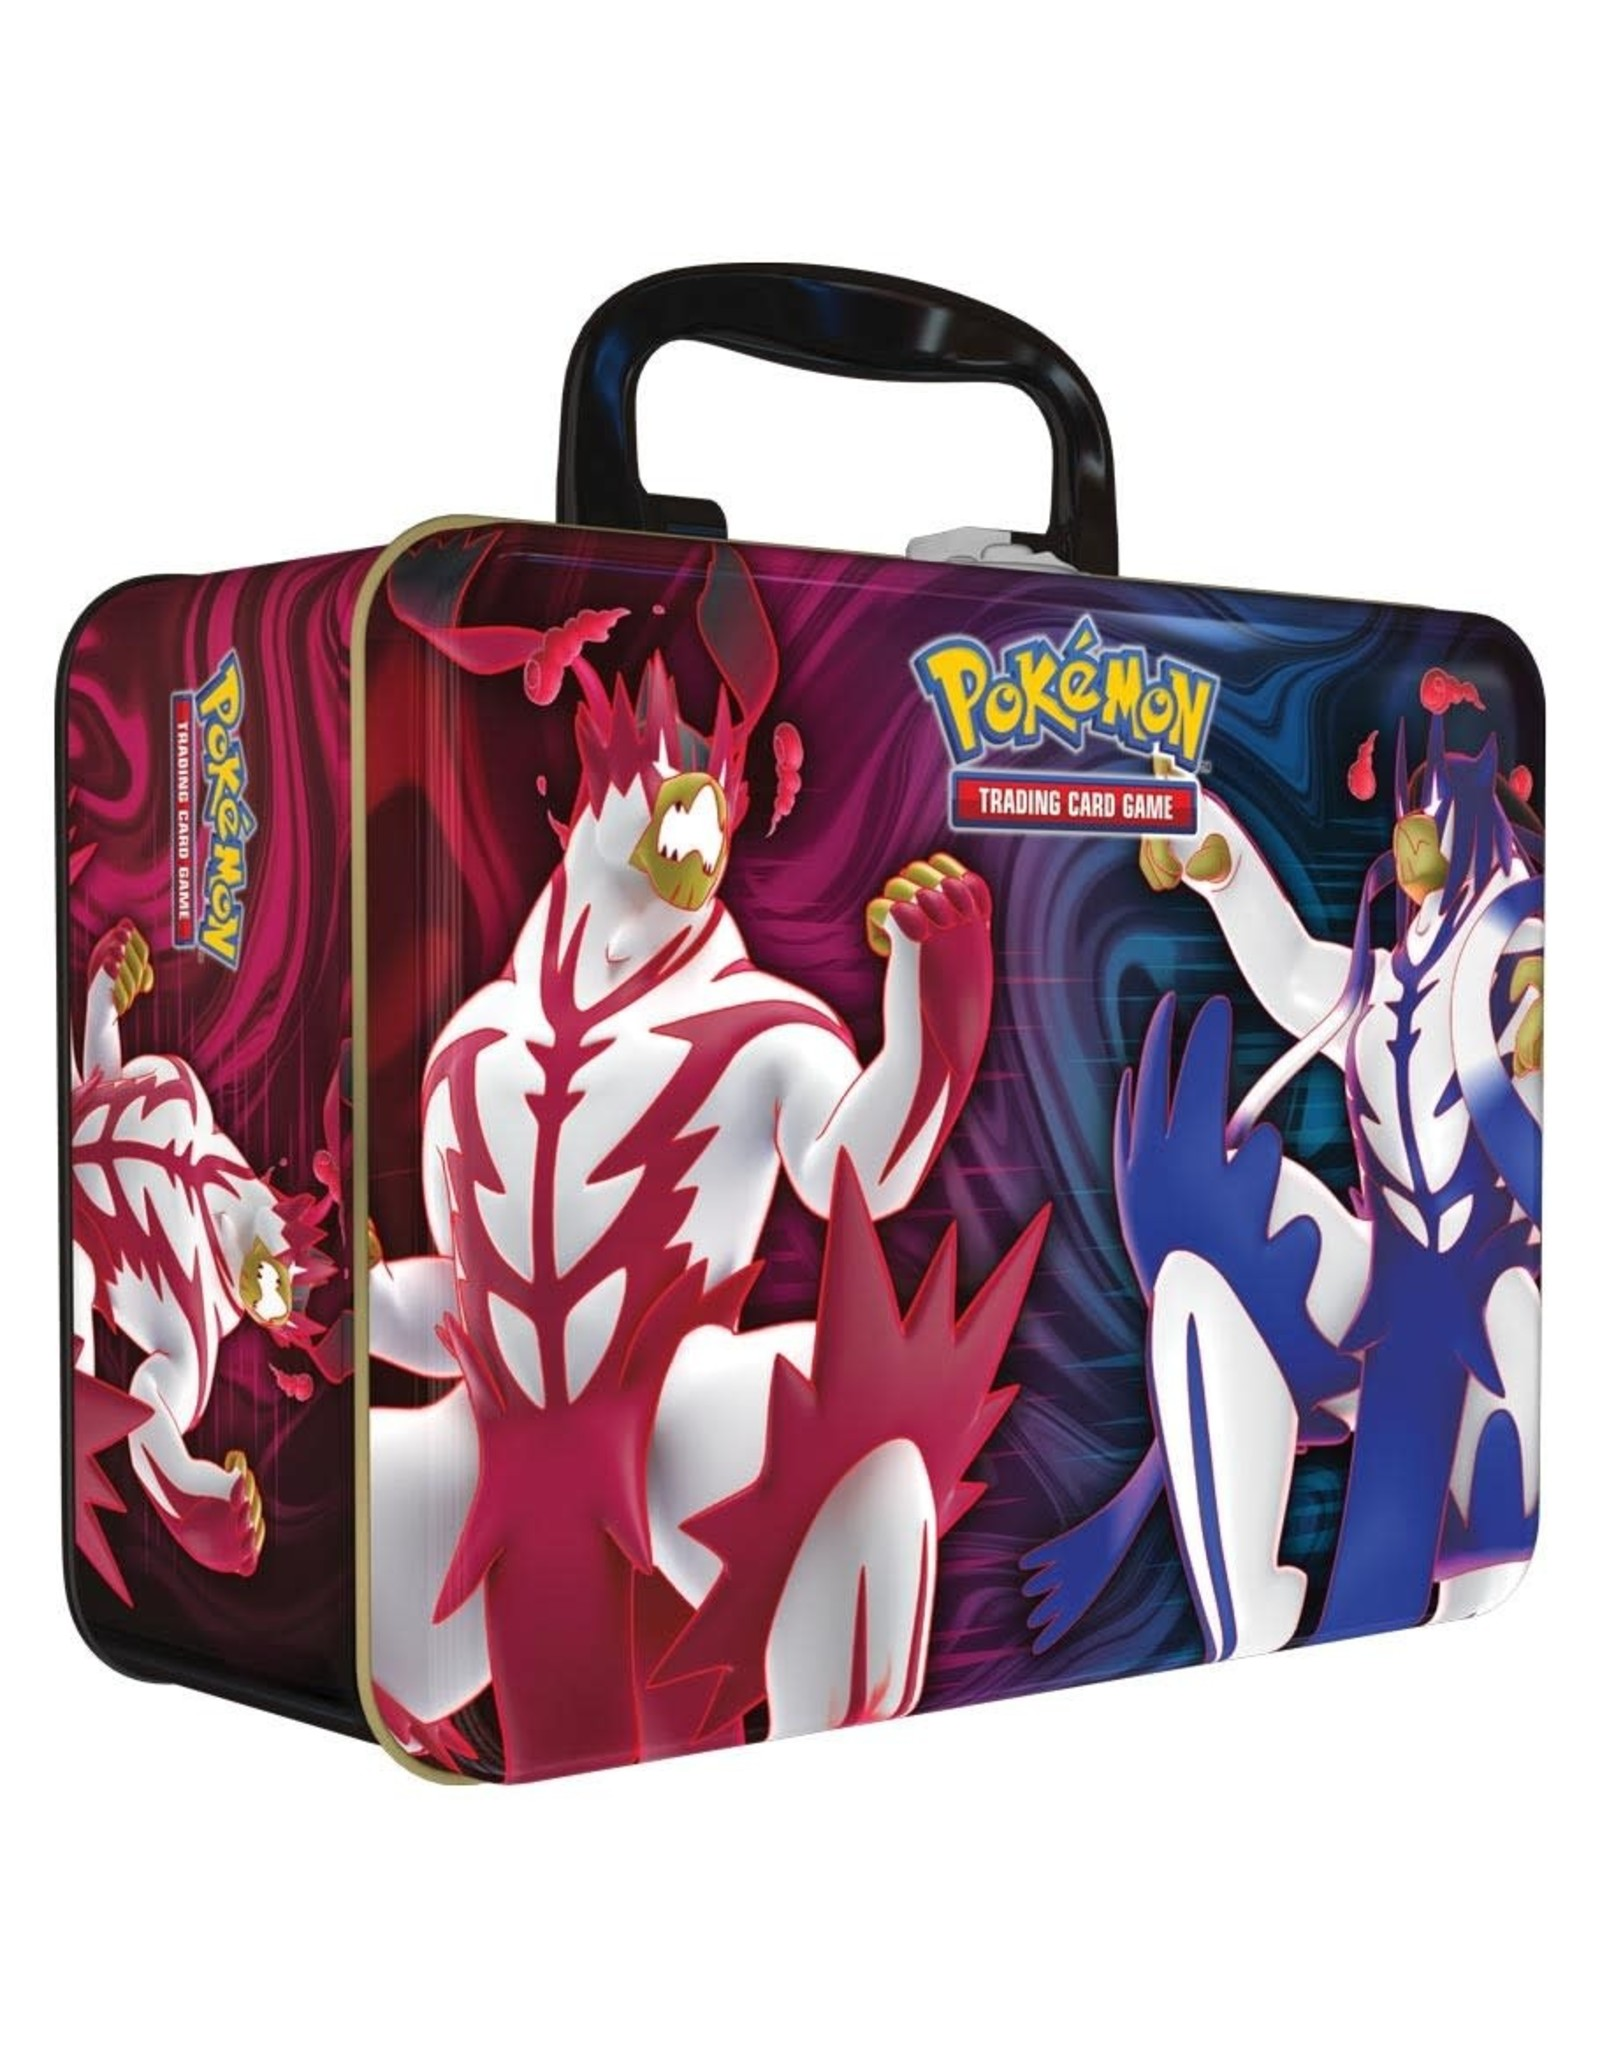 Pokemon Collector Chest Spring 2021 - PREORDER, AVAILABLE MARCH 19